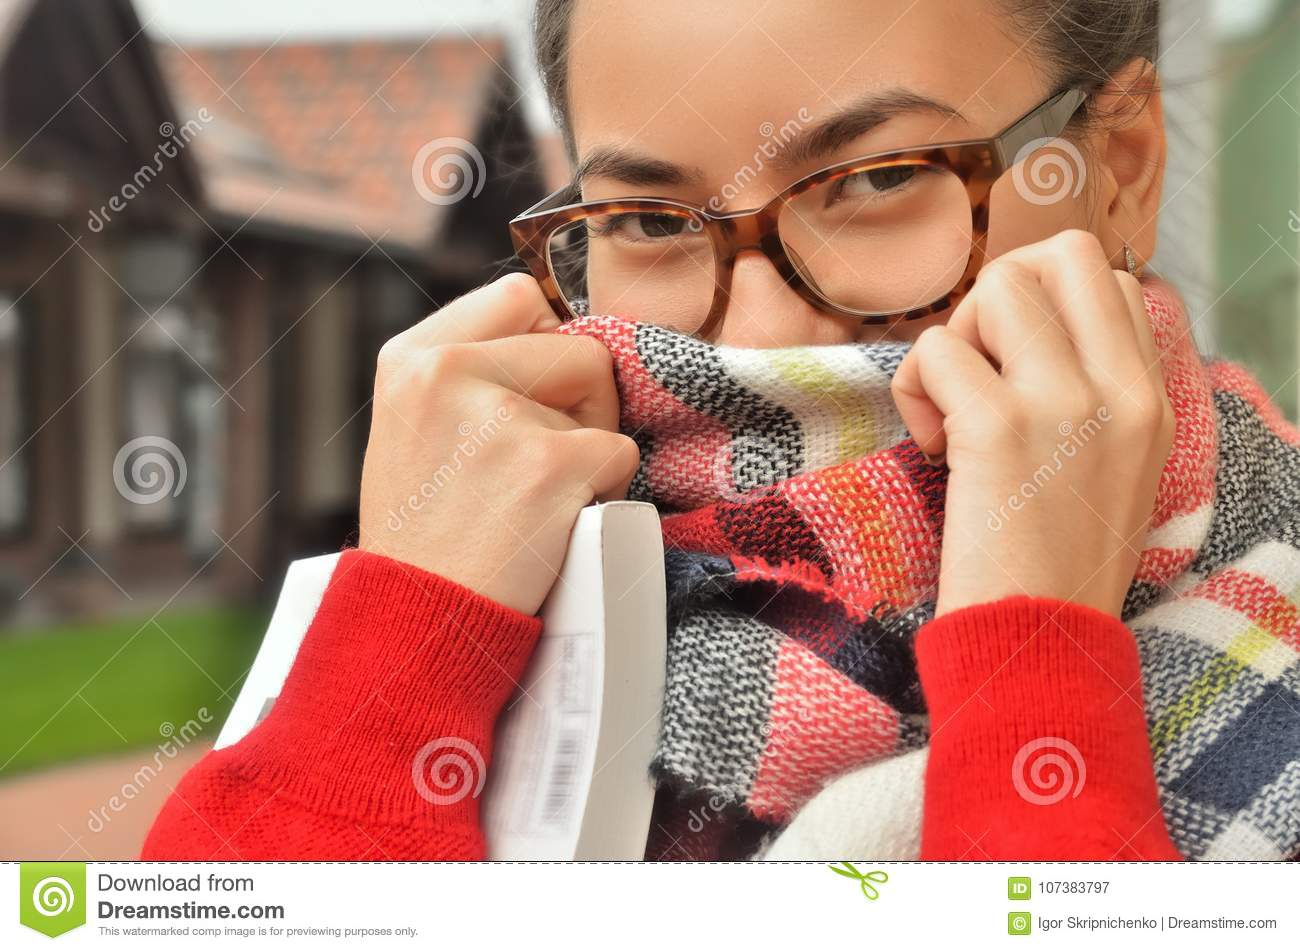 Portrait of an Asian girl in glasses, she screwed her face with a scarf,  only her eyes and hands are visible. The hair is tied to the knot.